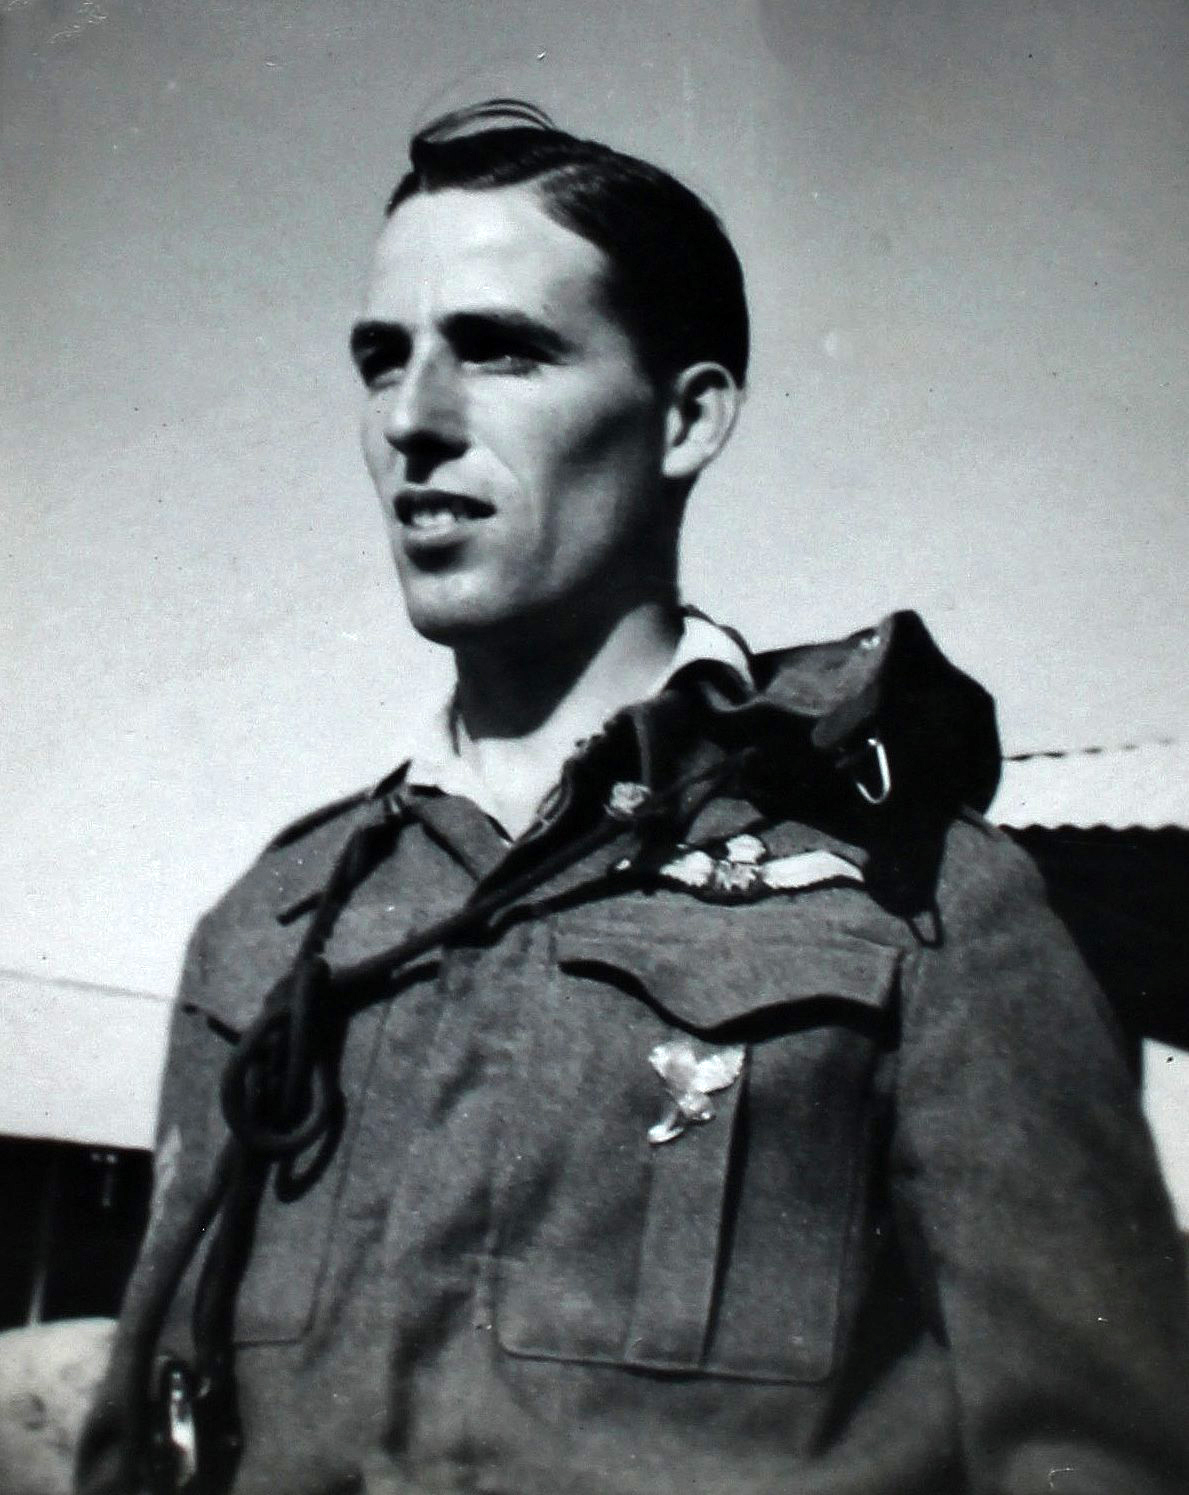 Winged boot RAF 38 Sqn Pilot at Shallufa Eygpt early 1942